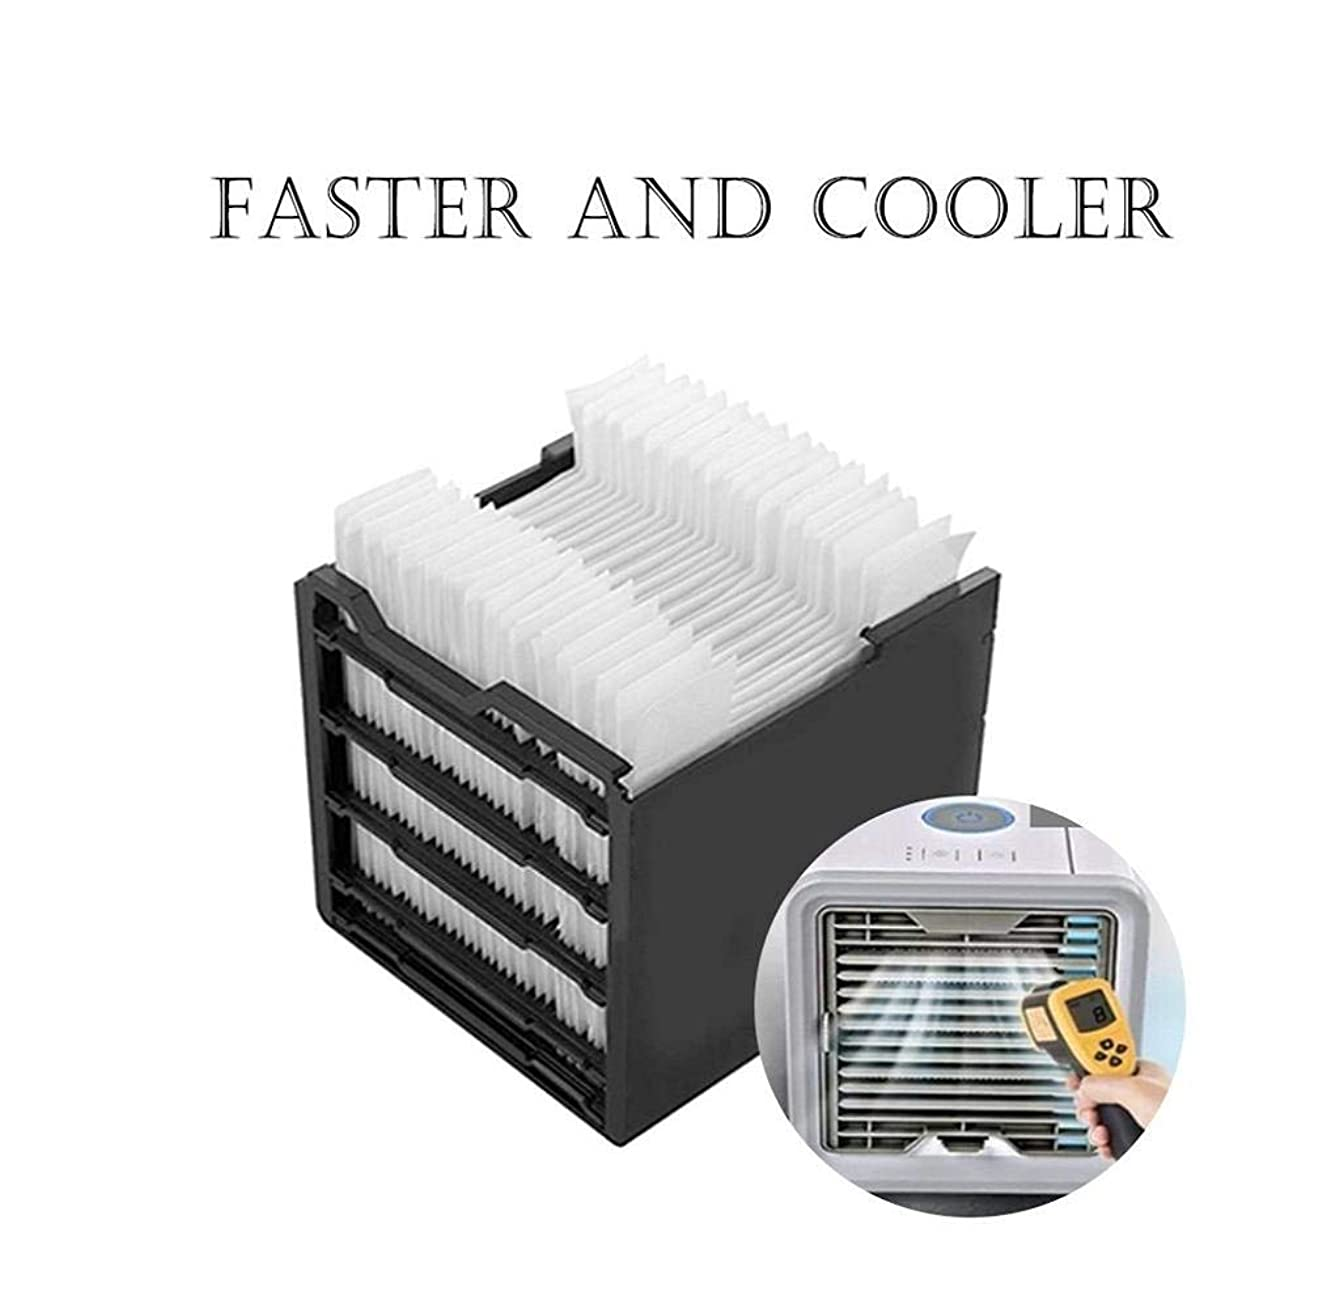 Beginning 1Pcs Arctic Air Personal Space Cooler Replacement Filte Space Cooler Replacement Filter Portable LED Table Fan, Ultra-Quiet Table Fan for Home Office Bedroom Kids (White)